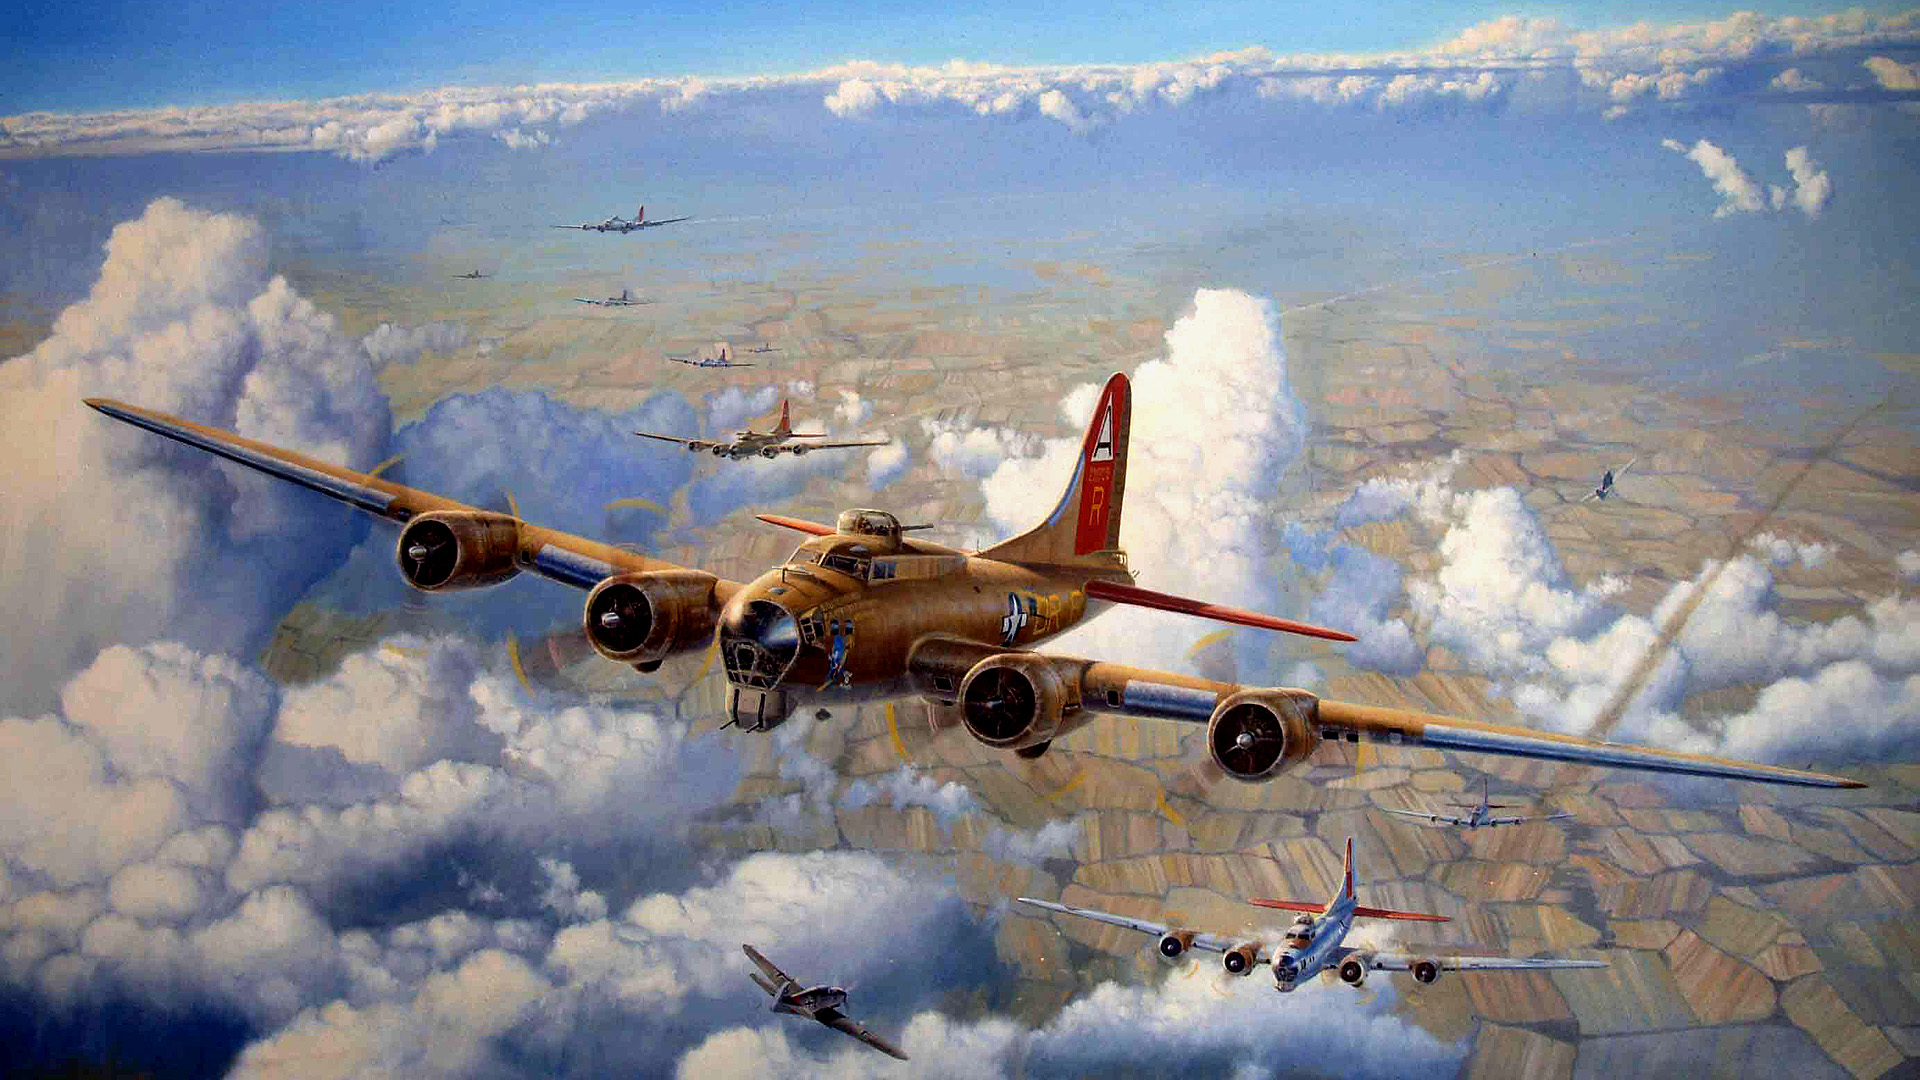 B 17 Flying Fortress Wallpaper 64 Boeing B-17 Flying ...